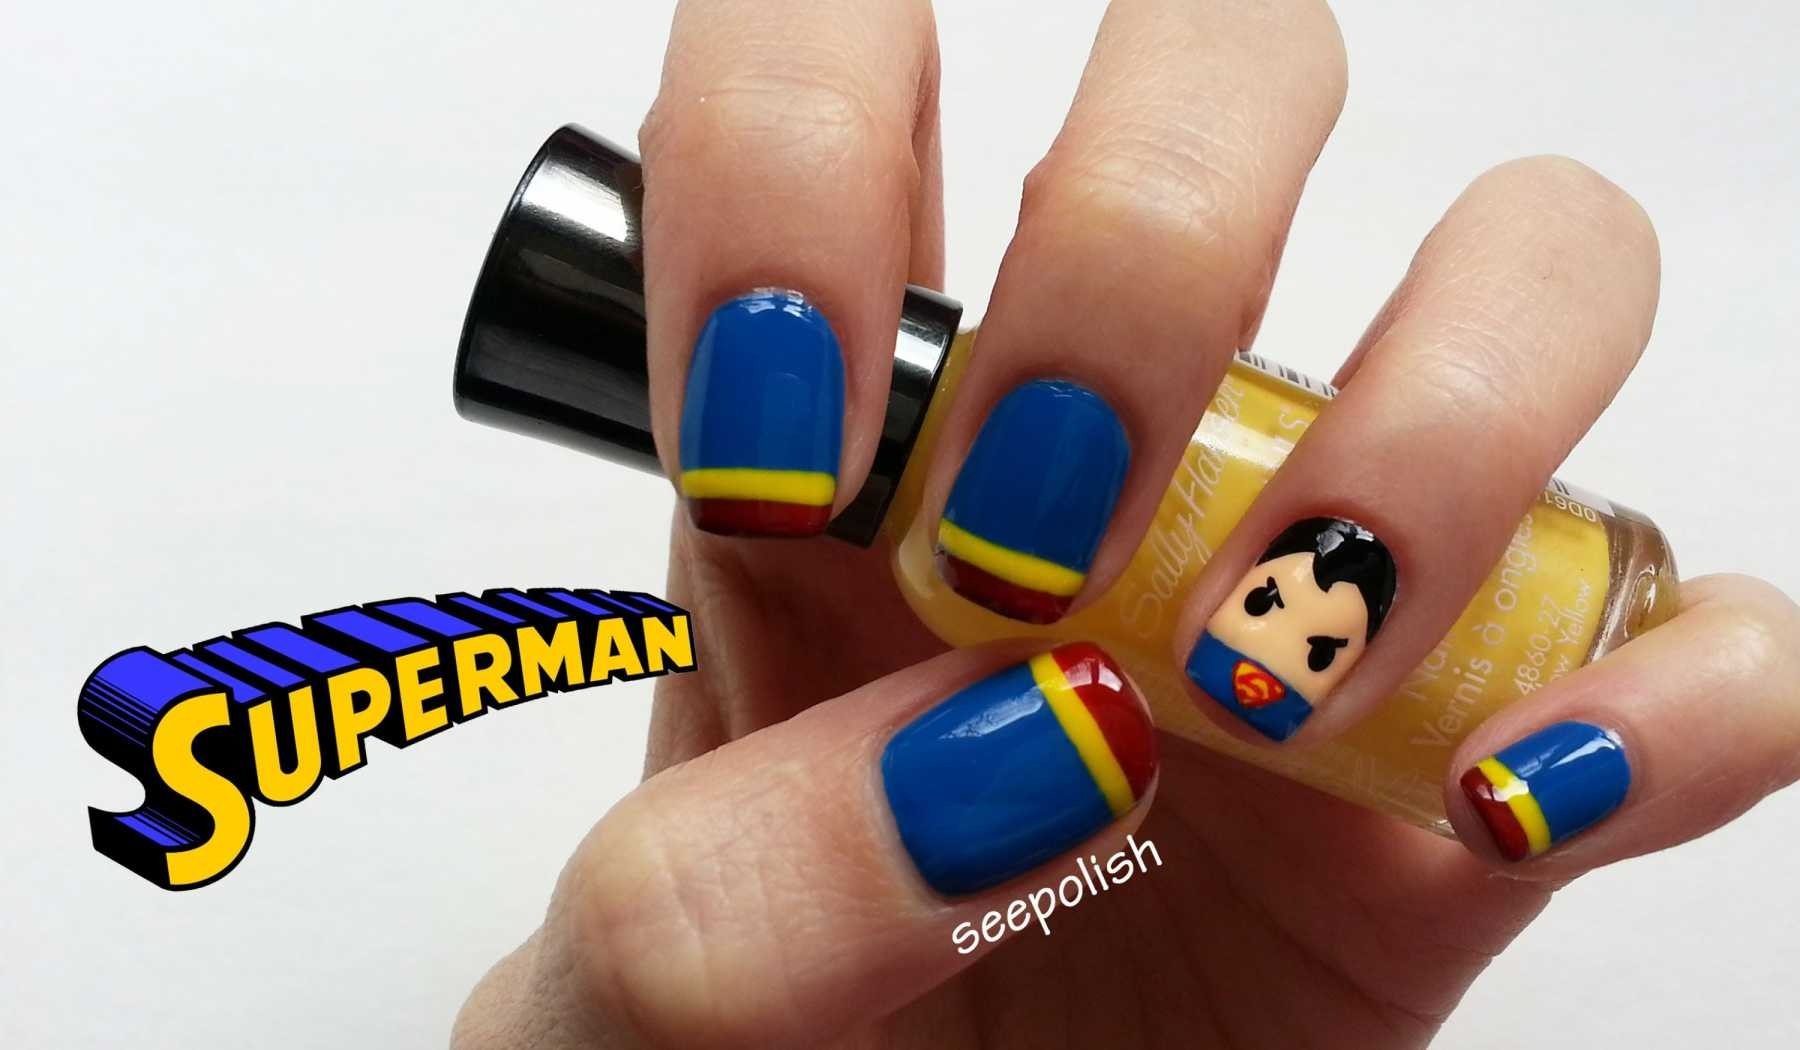 5 superhero nail art tutorials you have to try fashion popwrapped 5 superhero nail art tutorials you have to try superhero nail art prinsesfo Gallery